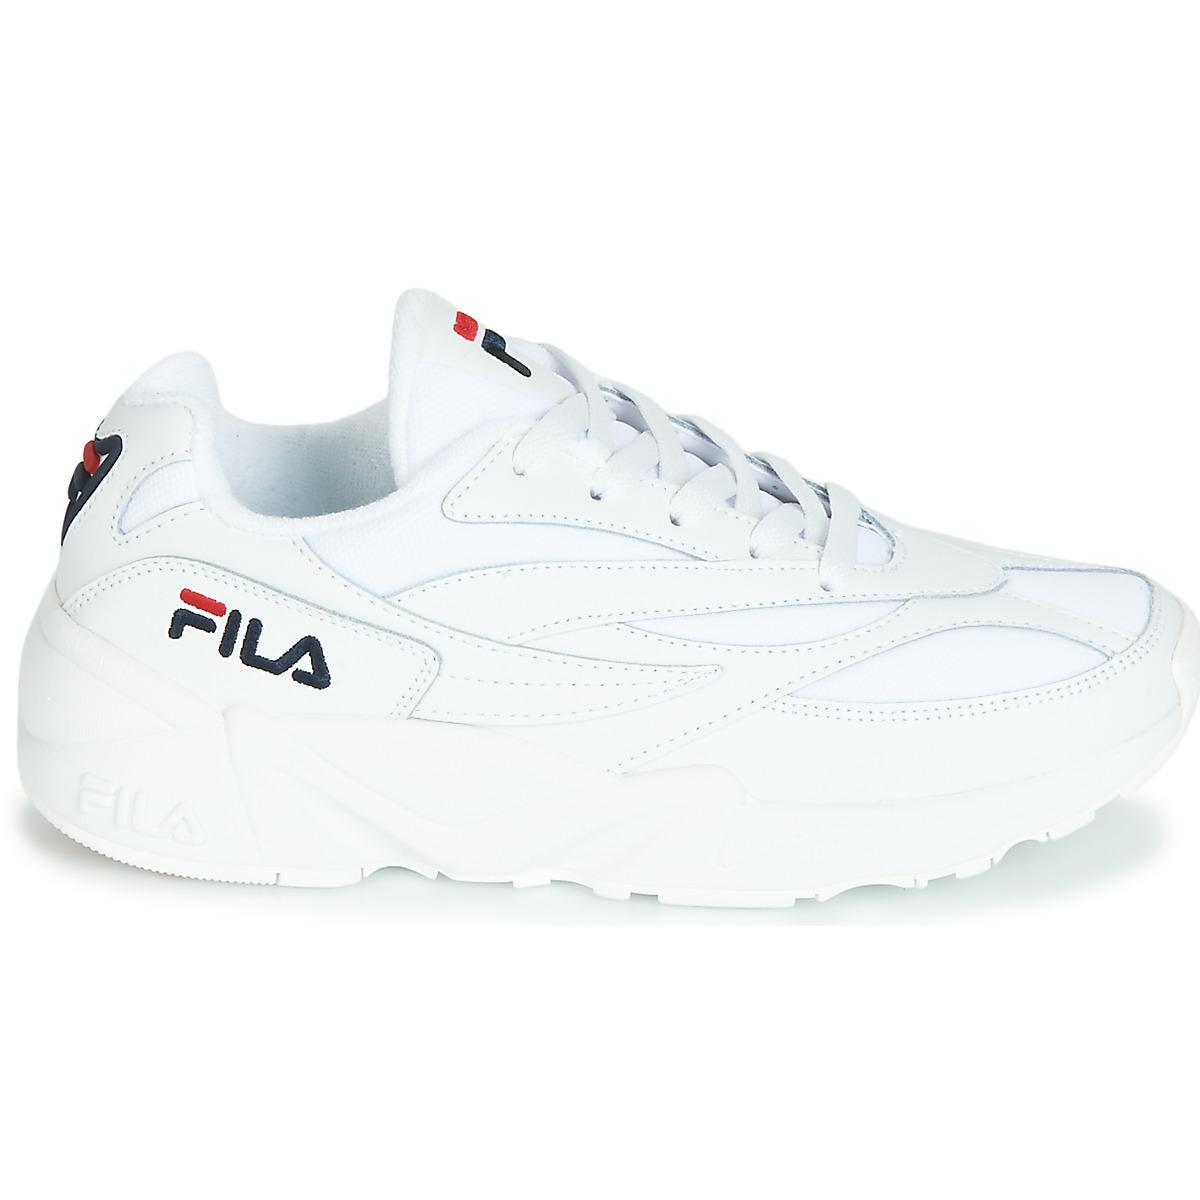 2864ee886e0 Fila Venom Low Wmn Shoes (trainers) in White - Save 26% - Lyst